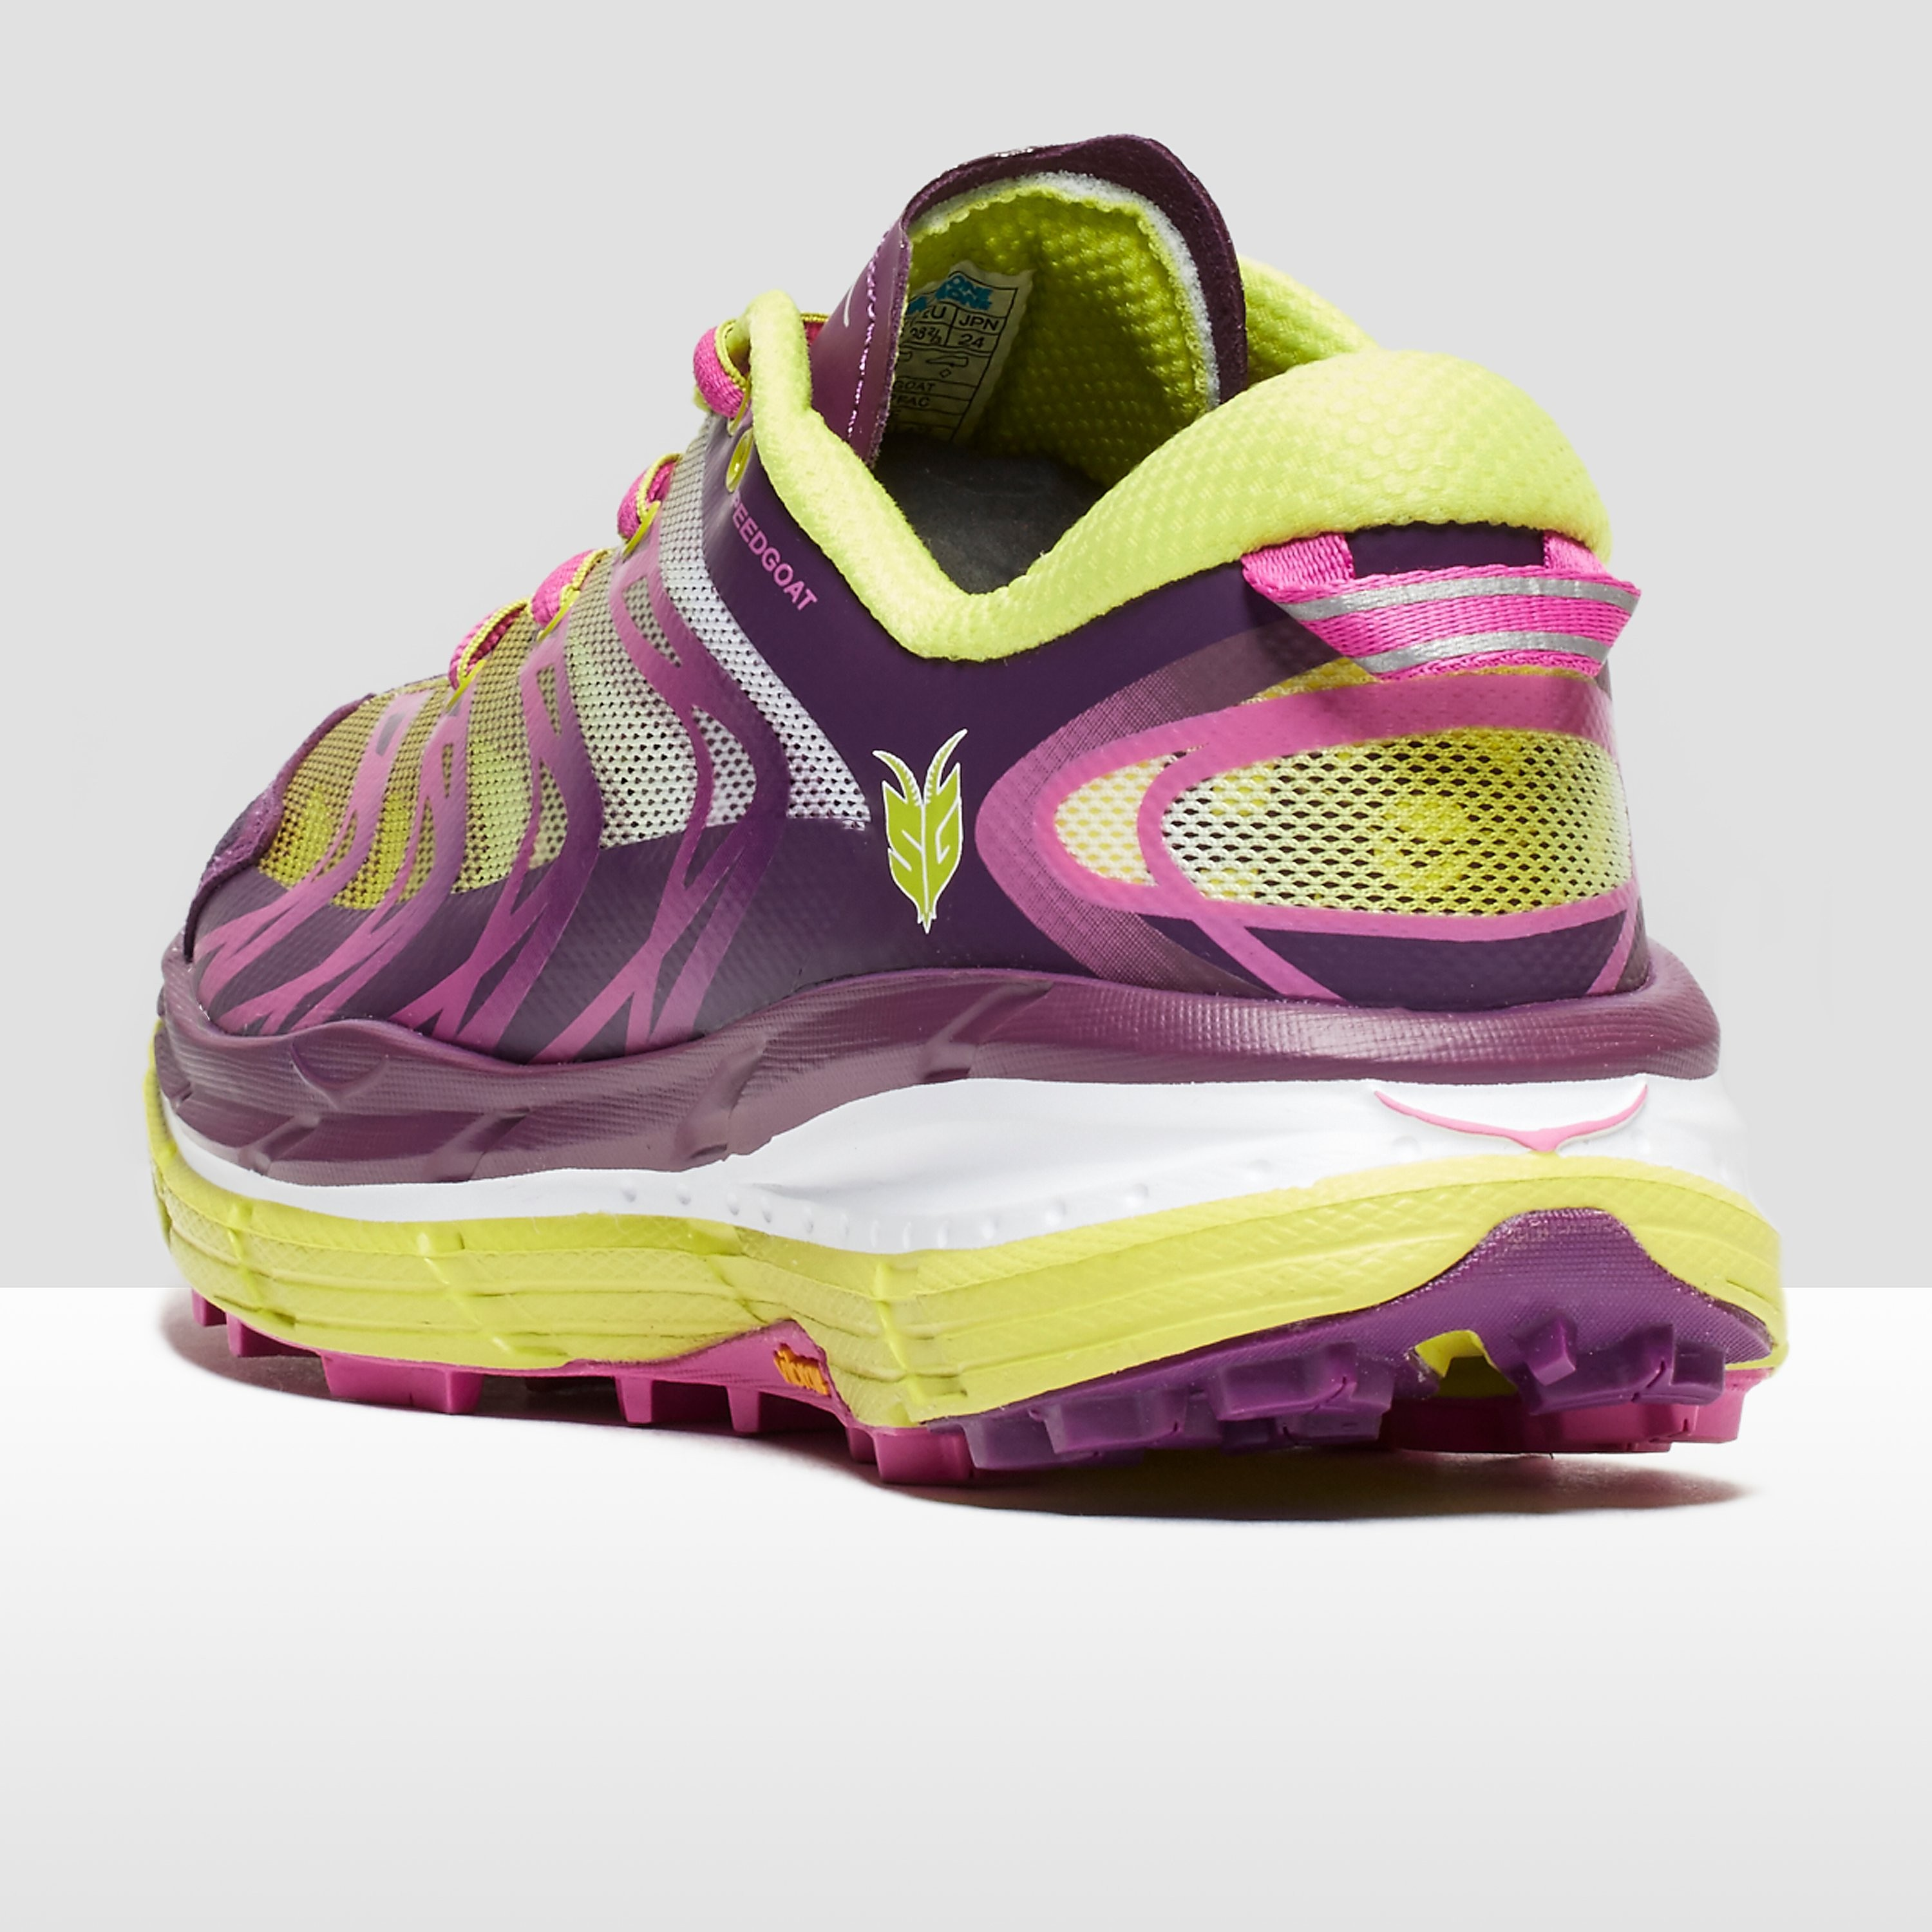 Hoka One One Speedgoat Women's Running Shoes